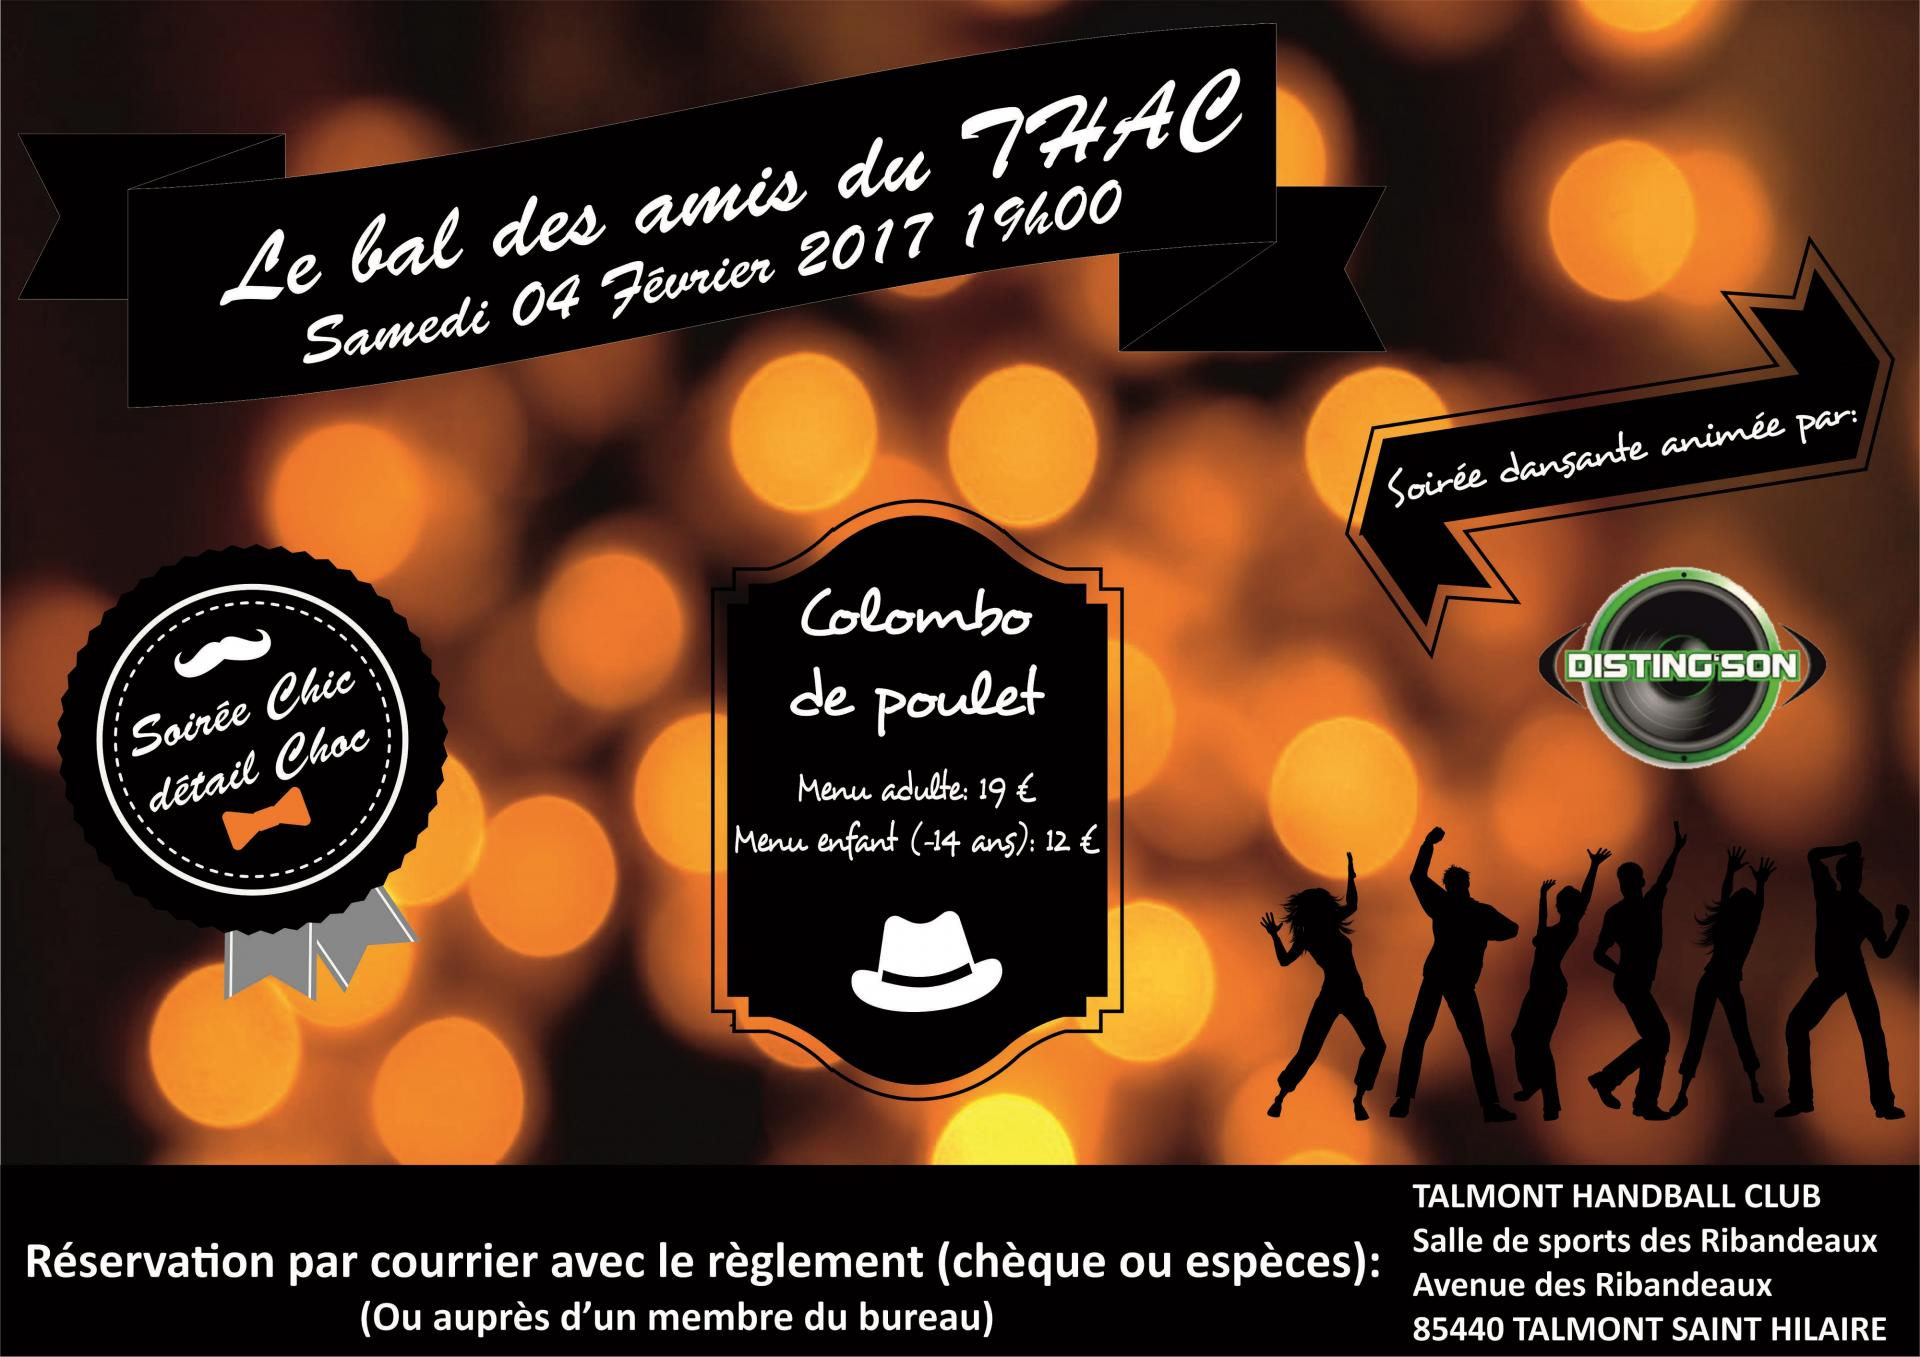 Soiree thac affiche 04 02 17 site